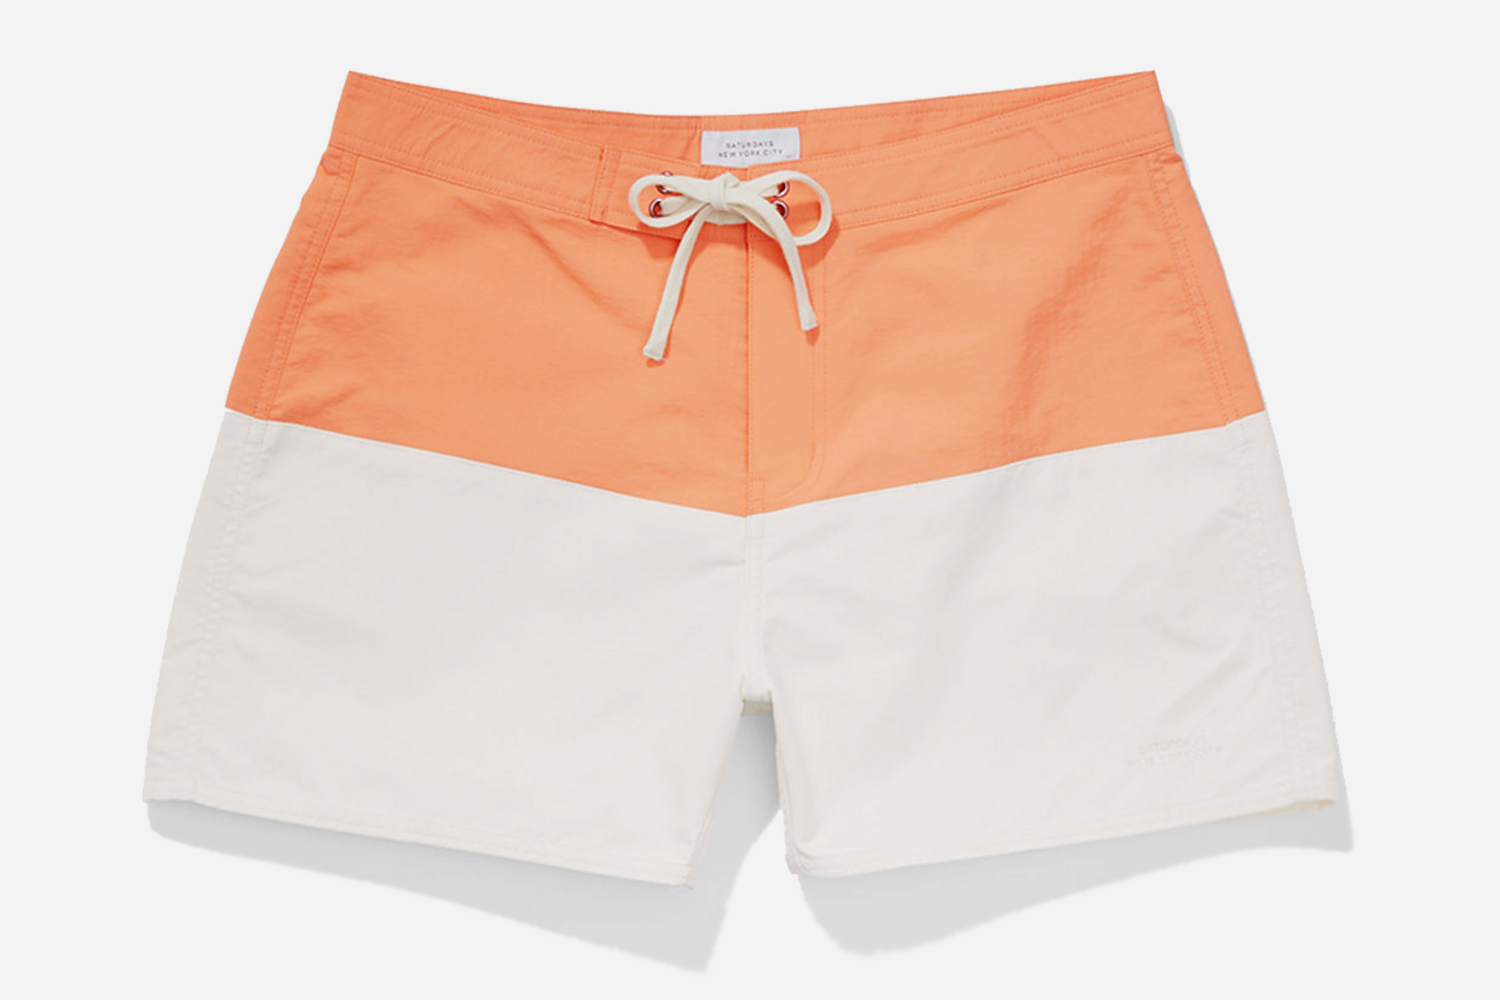 555e458c2a I Am Going to Wear These Peach Boardshorts and Nothing Else This ...